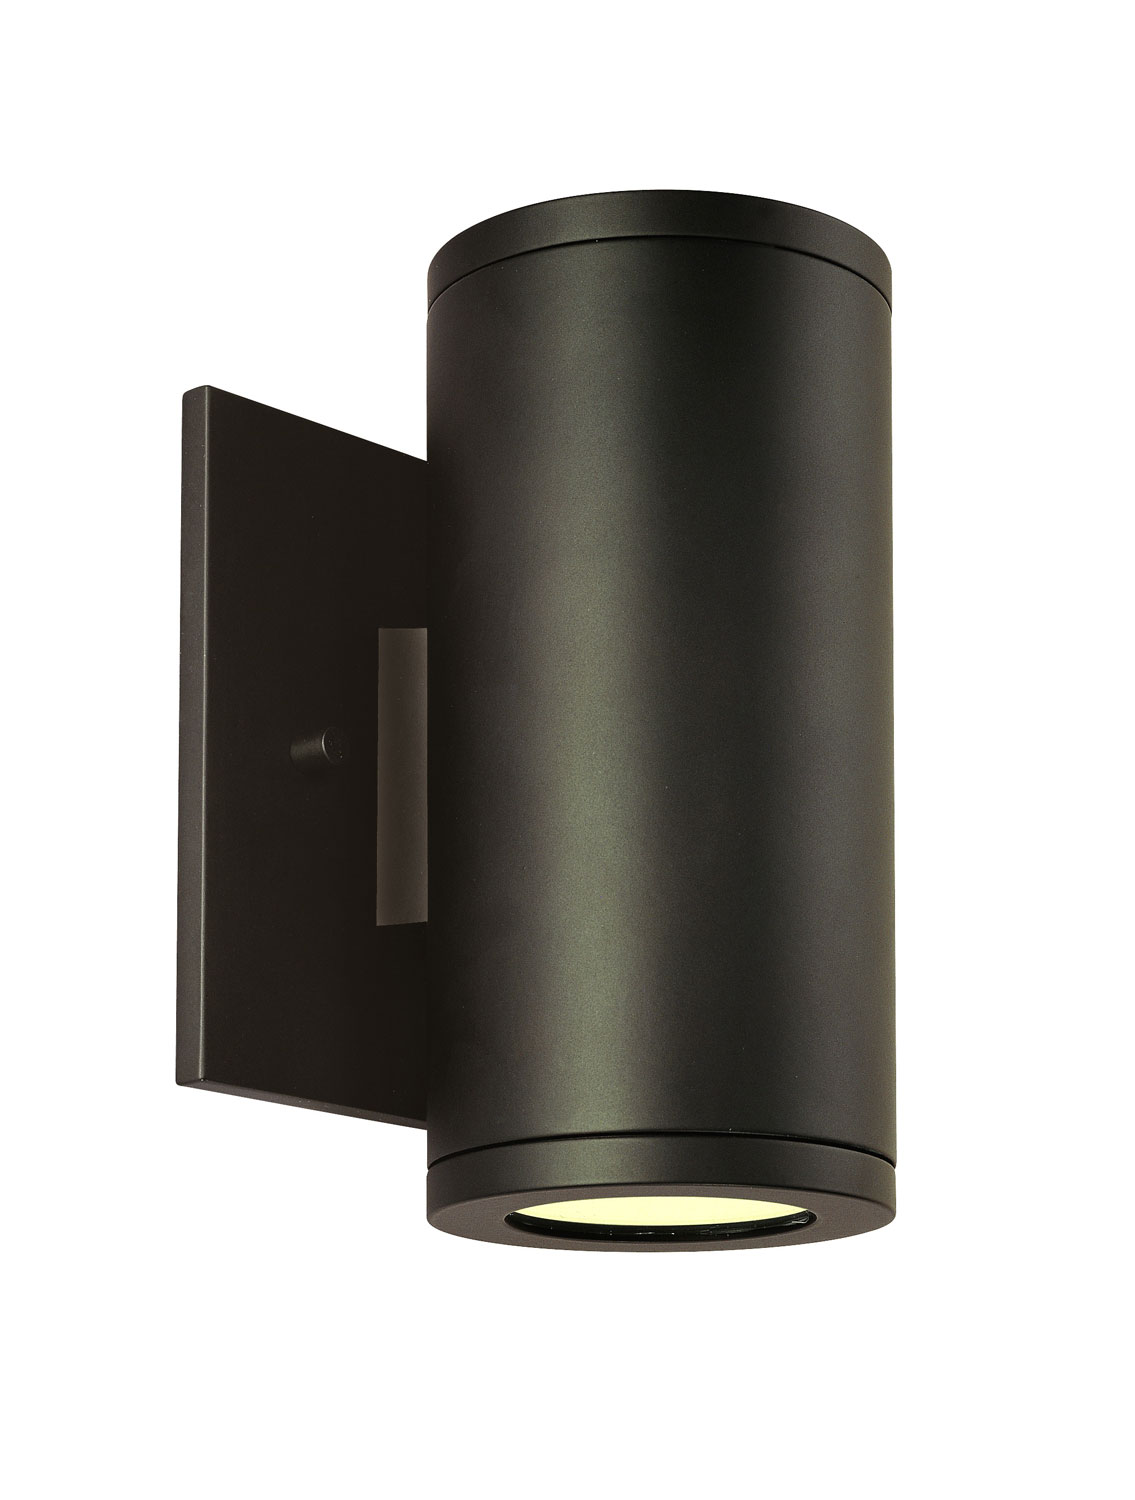 Guide to Exterior wall mounted light fixtures mercial